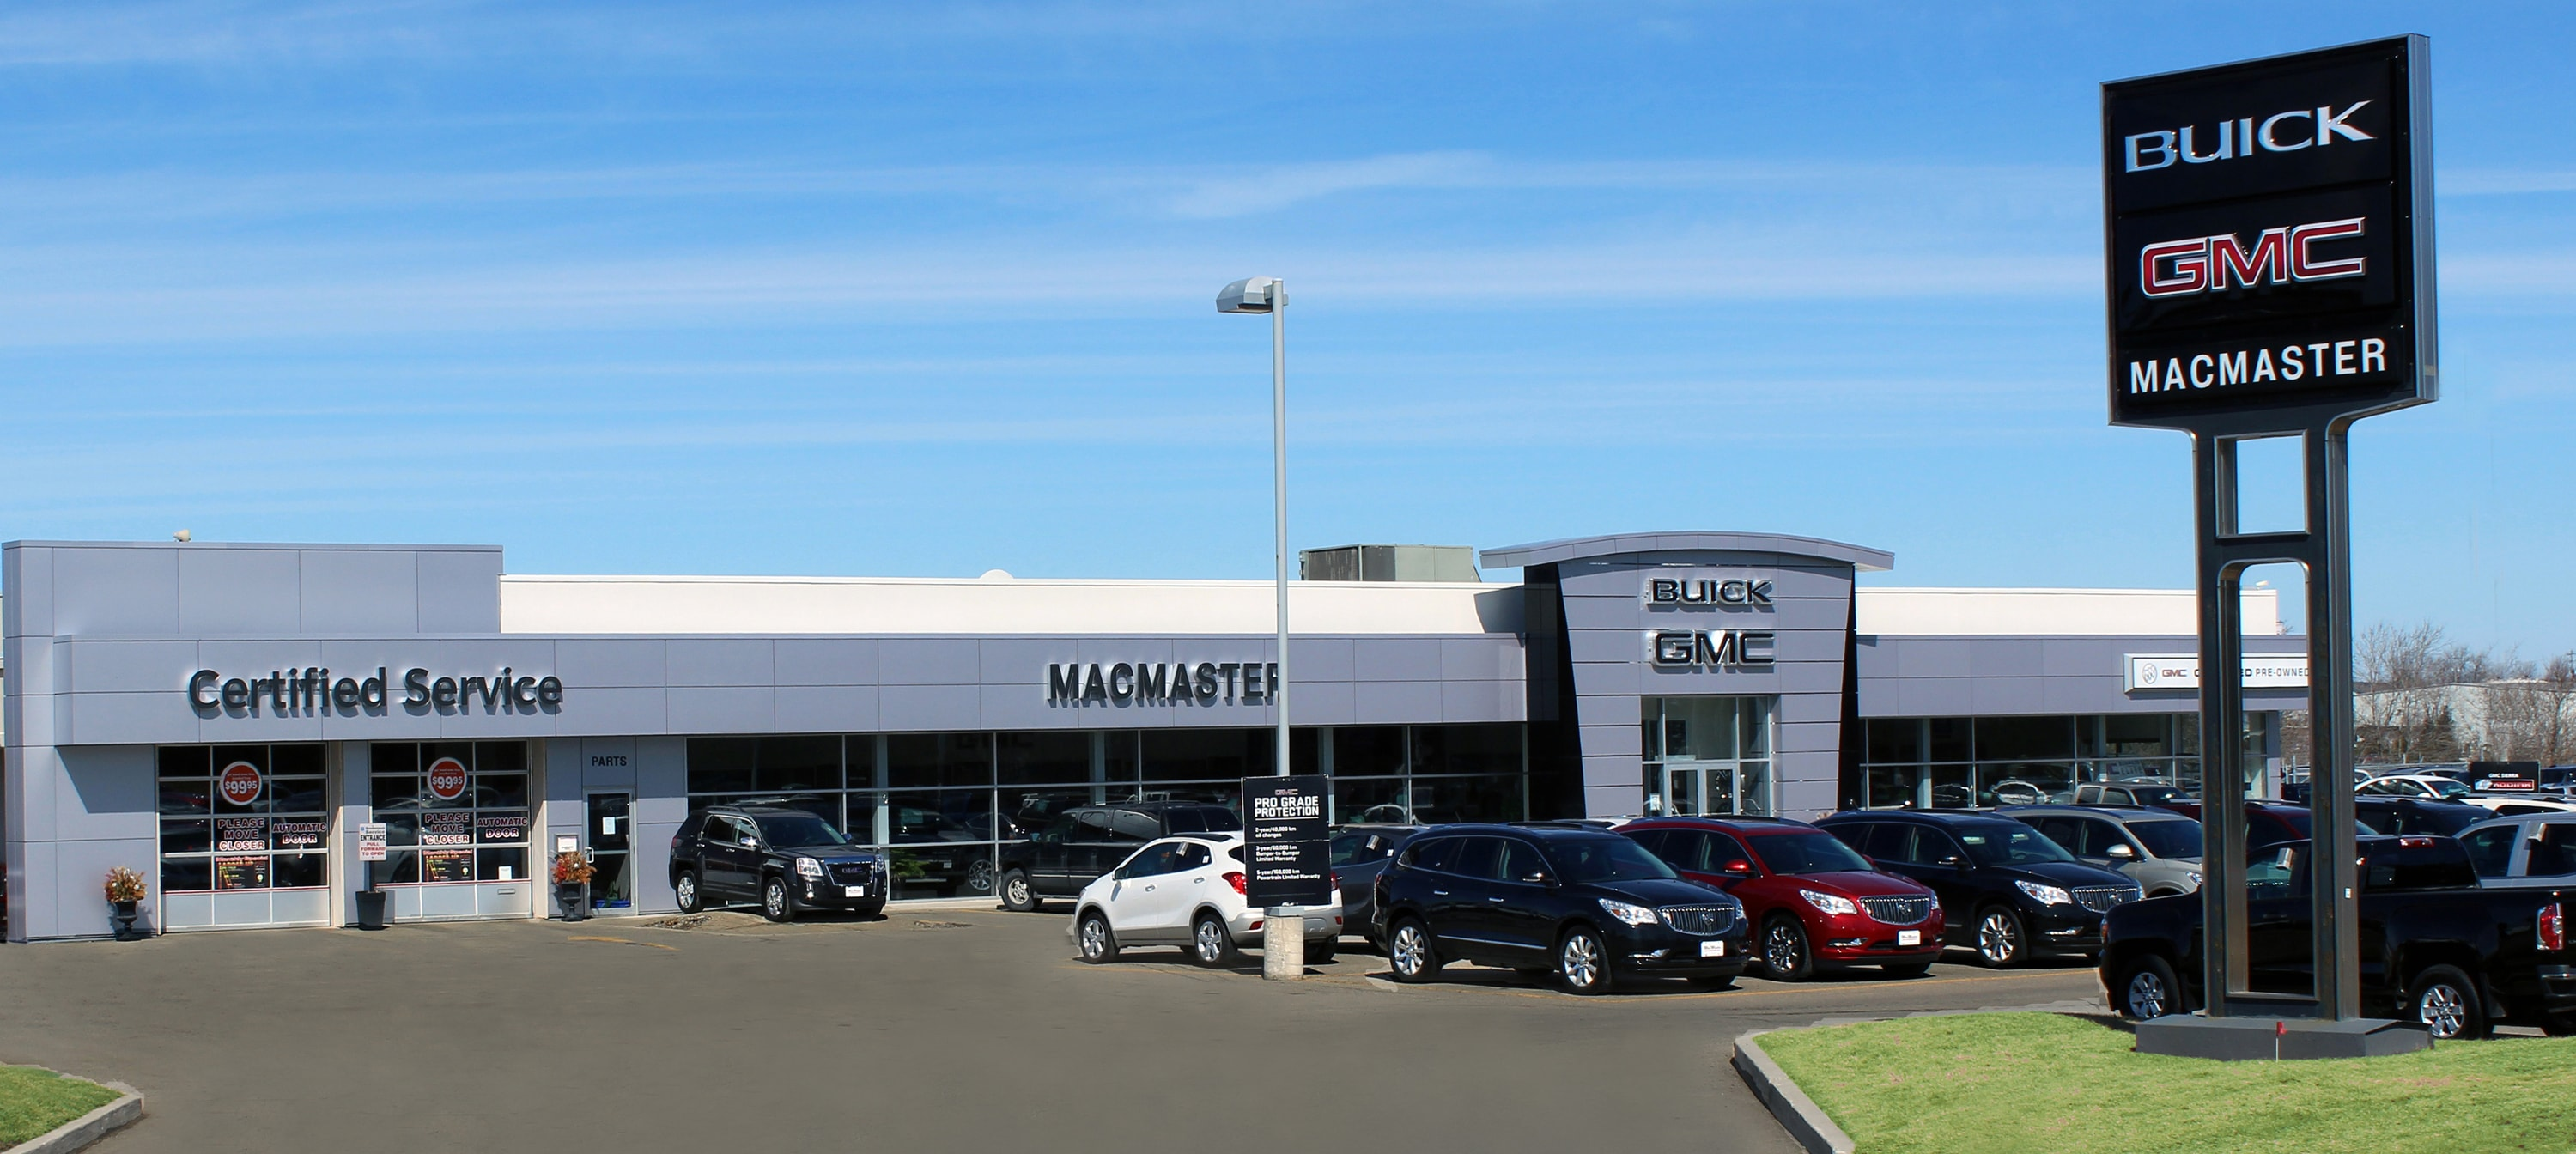 Macmaster Buick Gmc Vehicles For Sale In Orangeville On